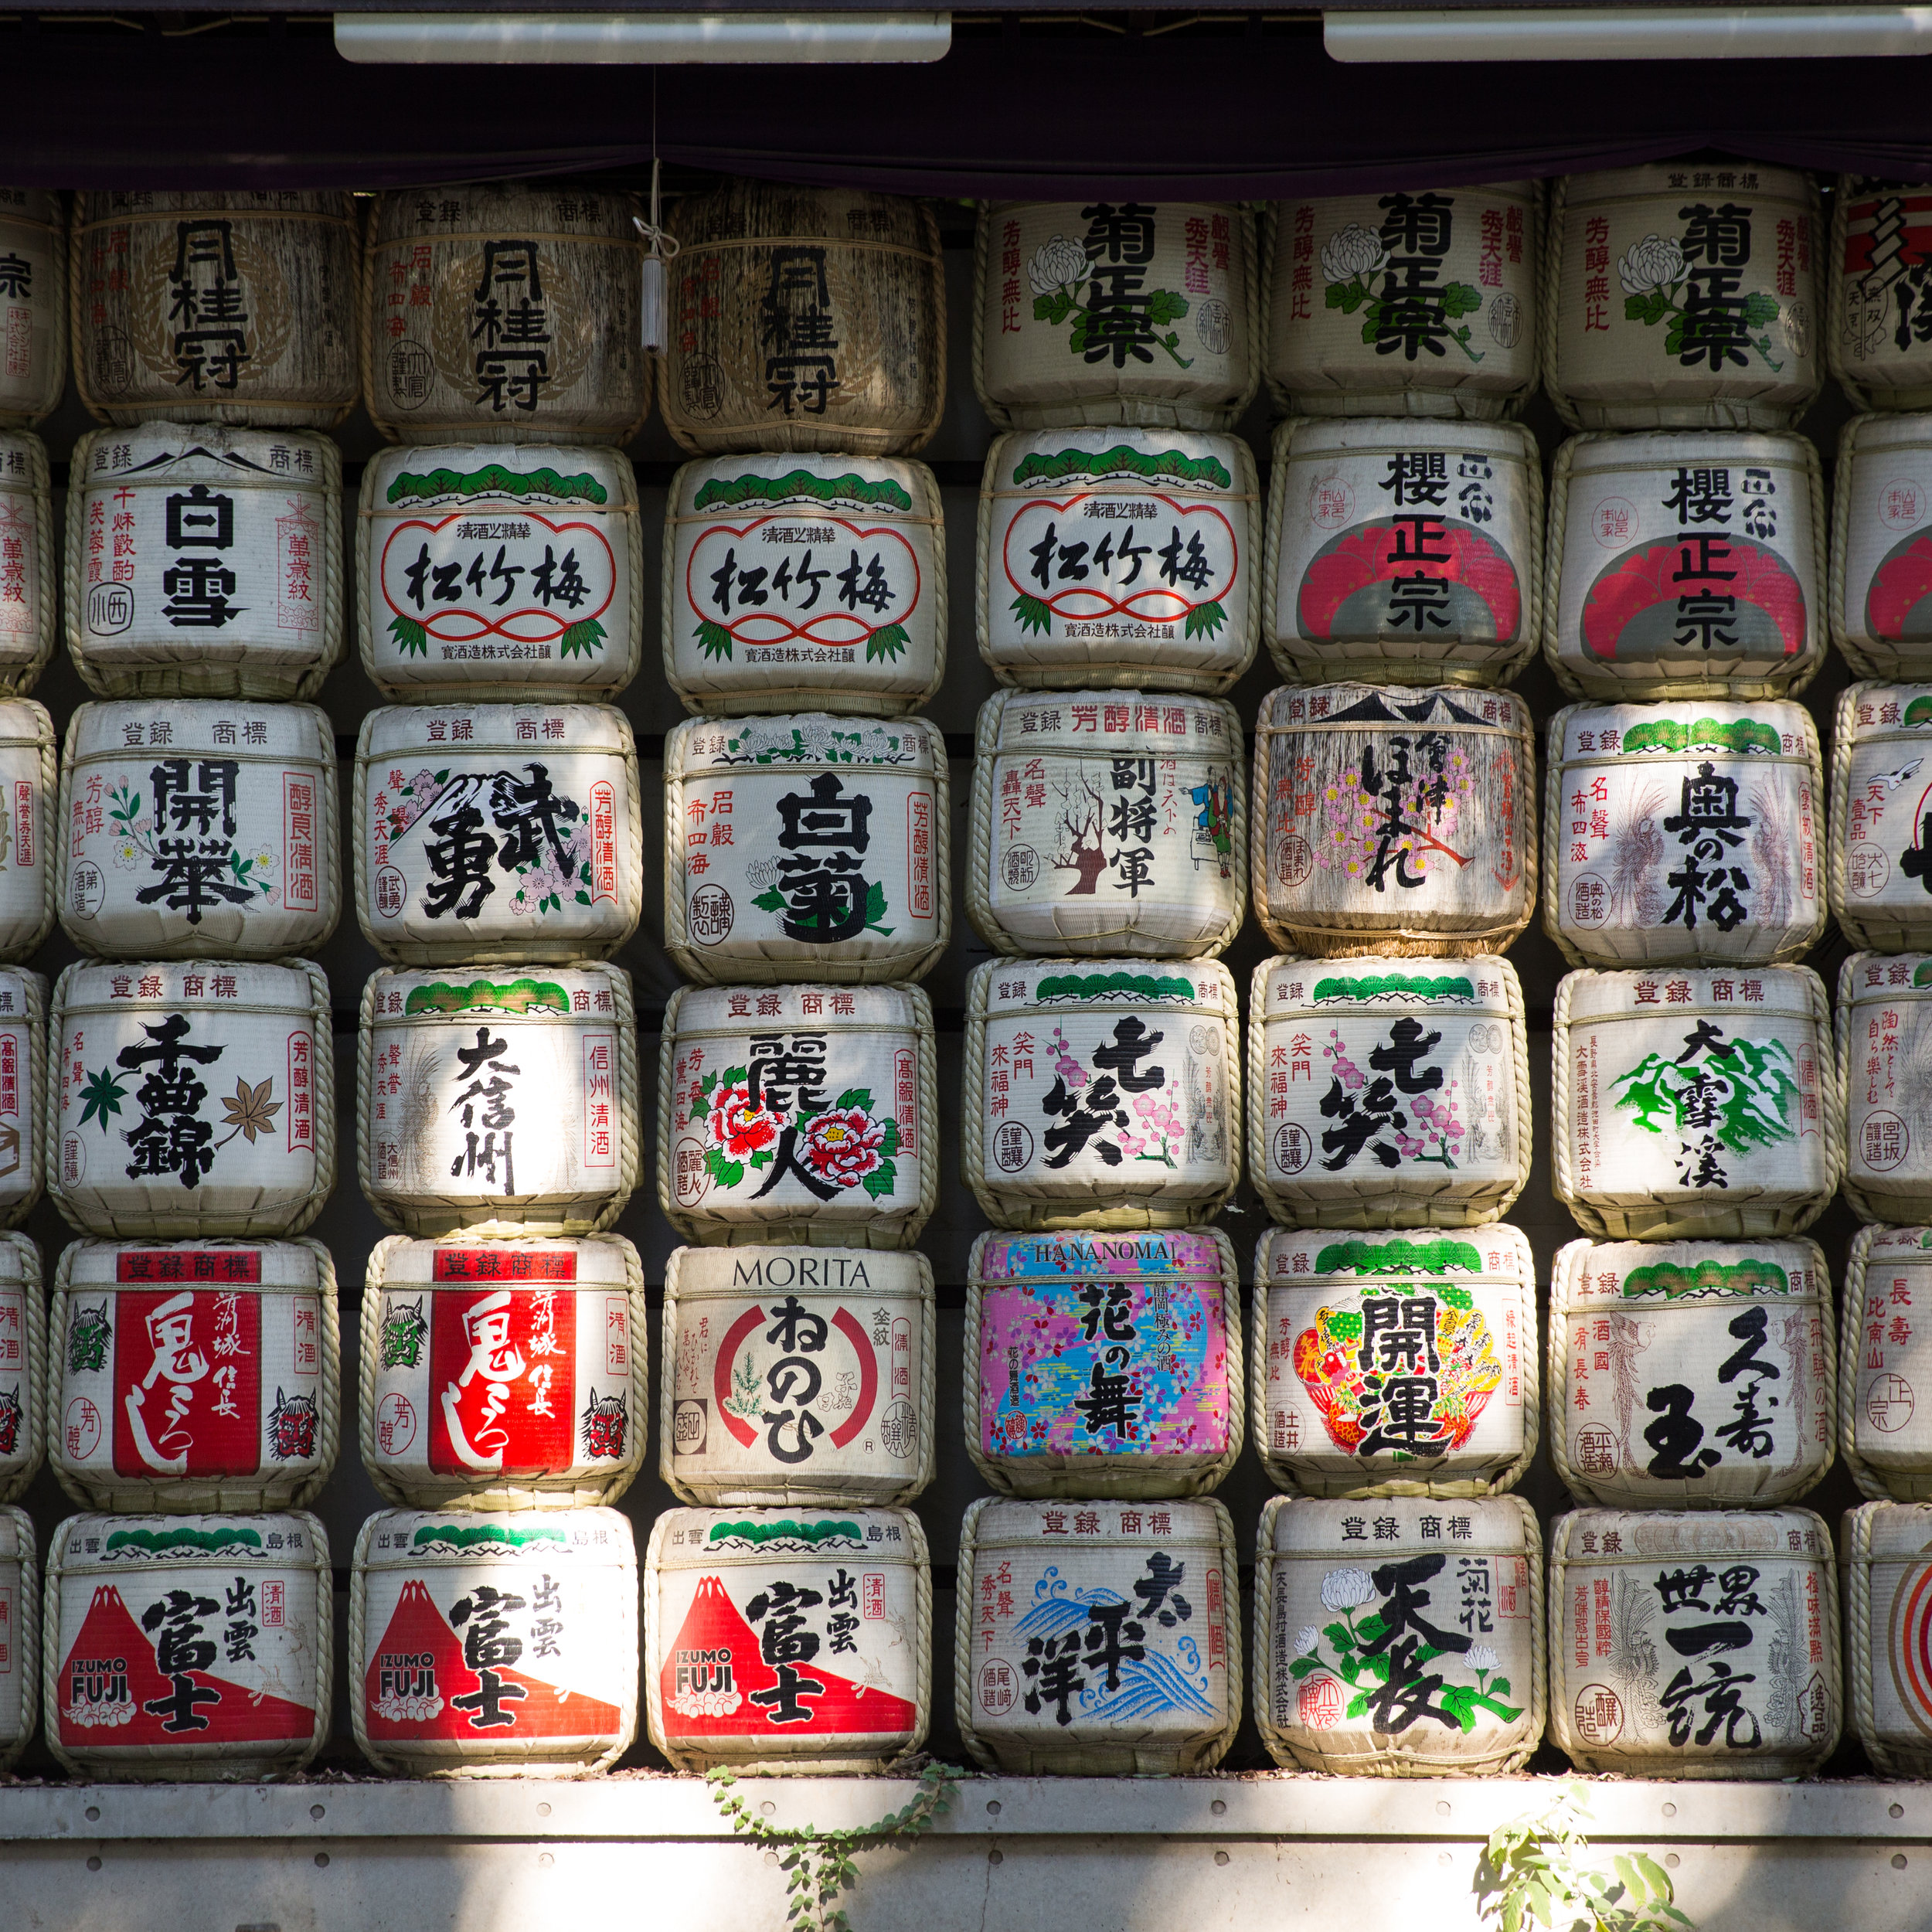 Sake offerings to the spirit of the Emperor.